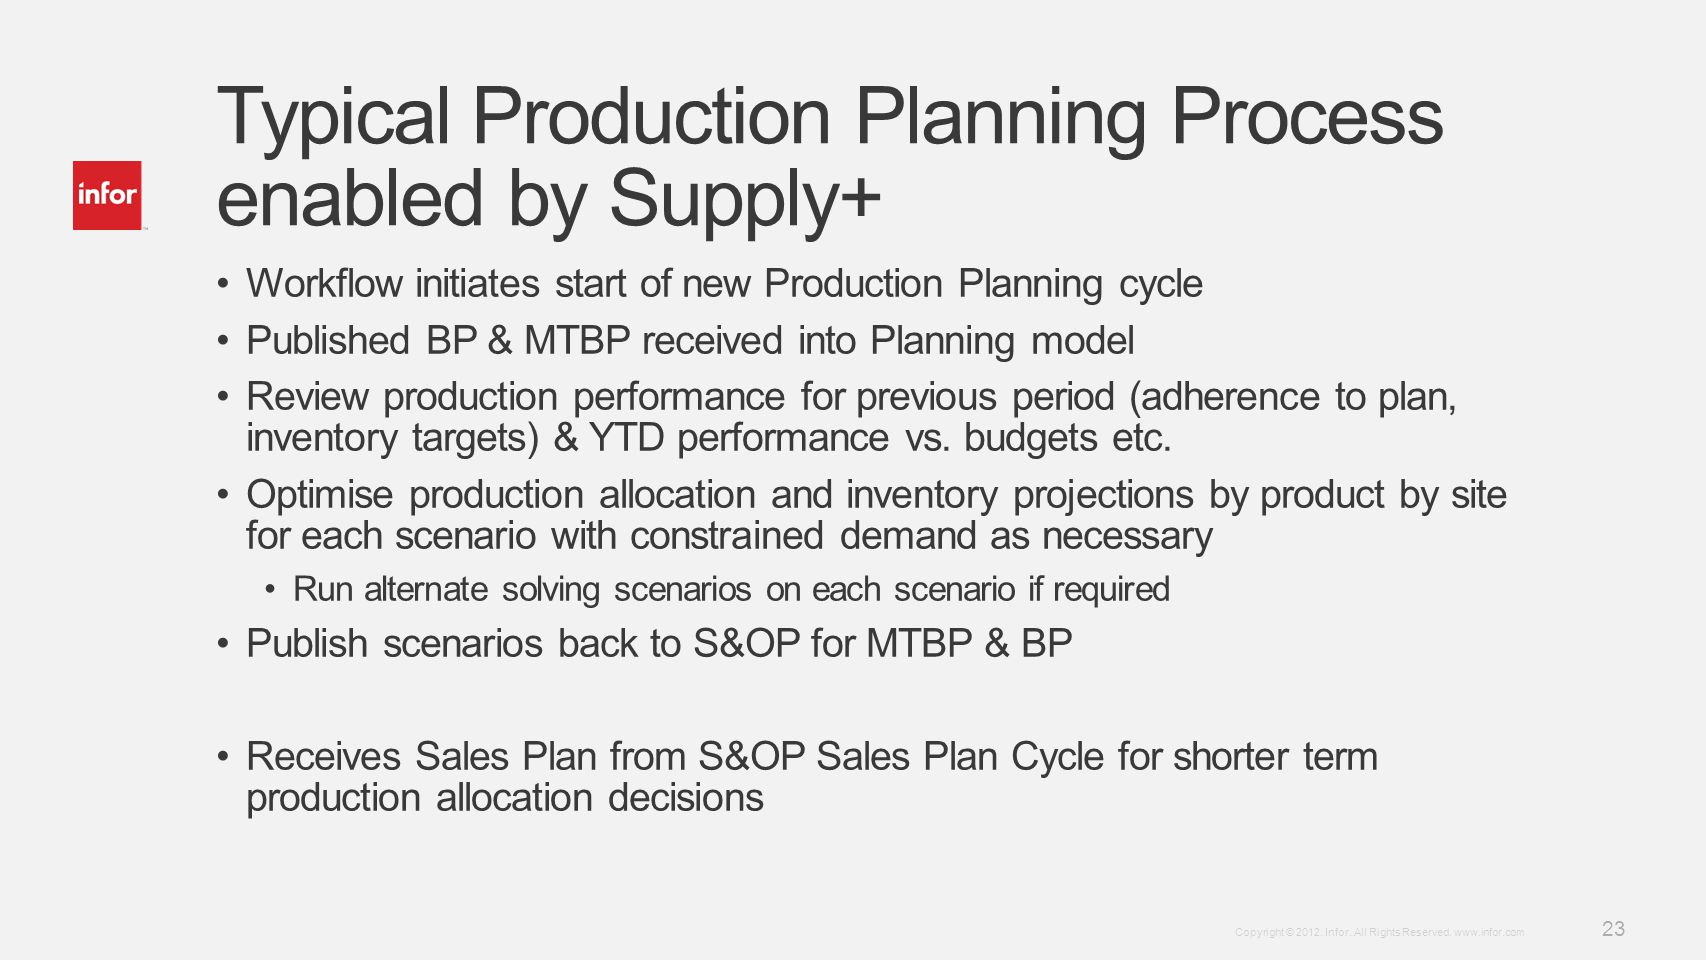 Typical Production Planning Process enabled by Supply+